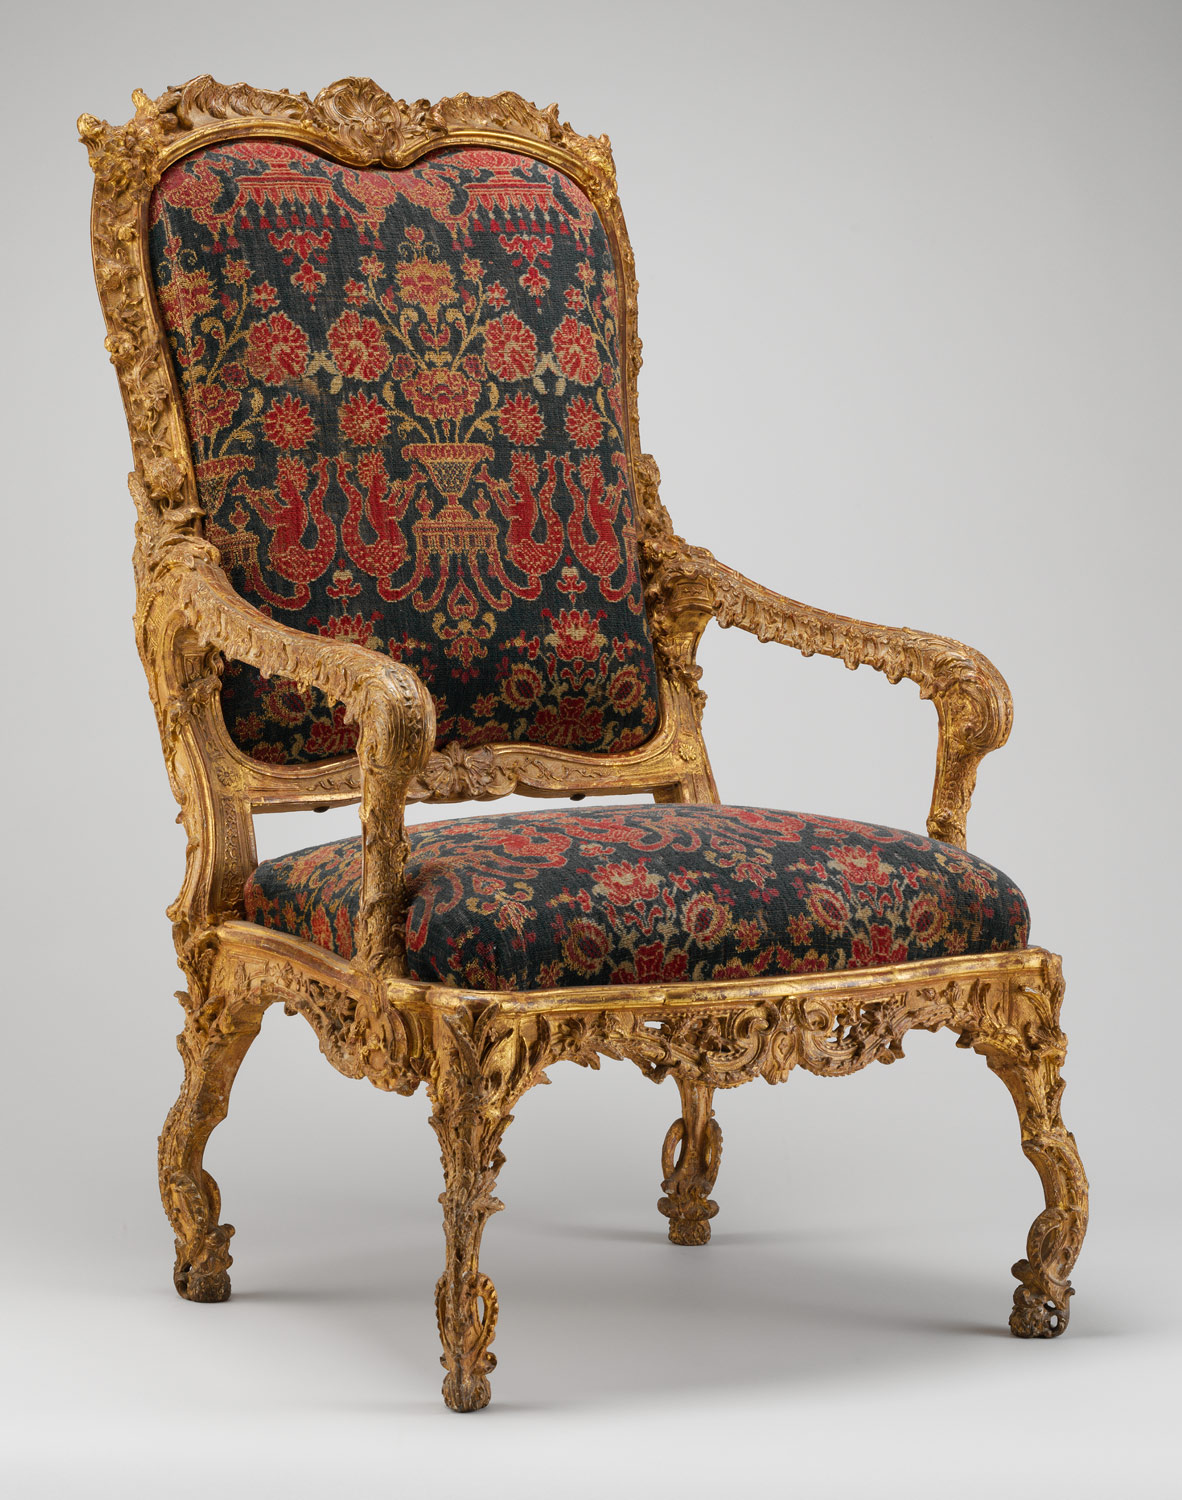 Styles Fauteuils French Furniture In The Eighteenth Century Seat Furniture Essay